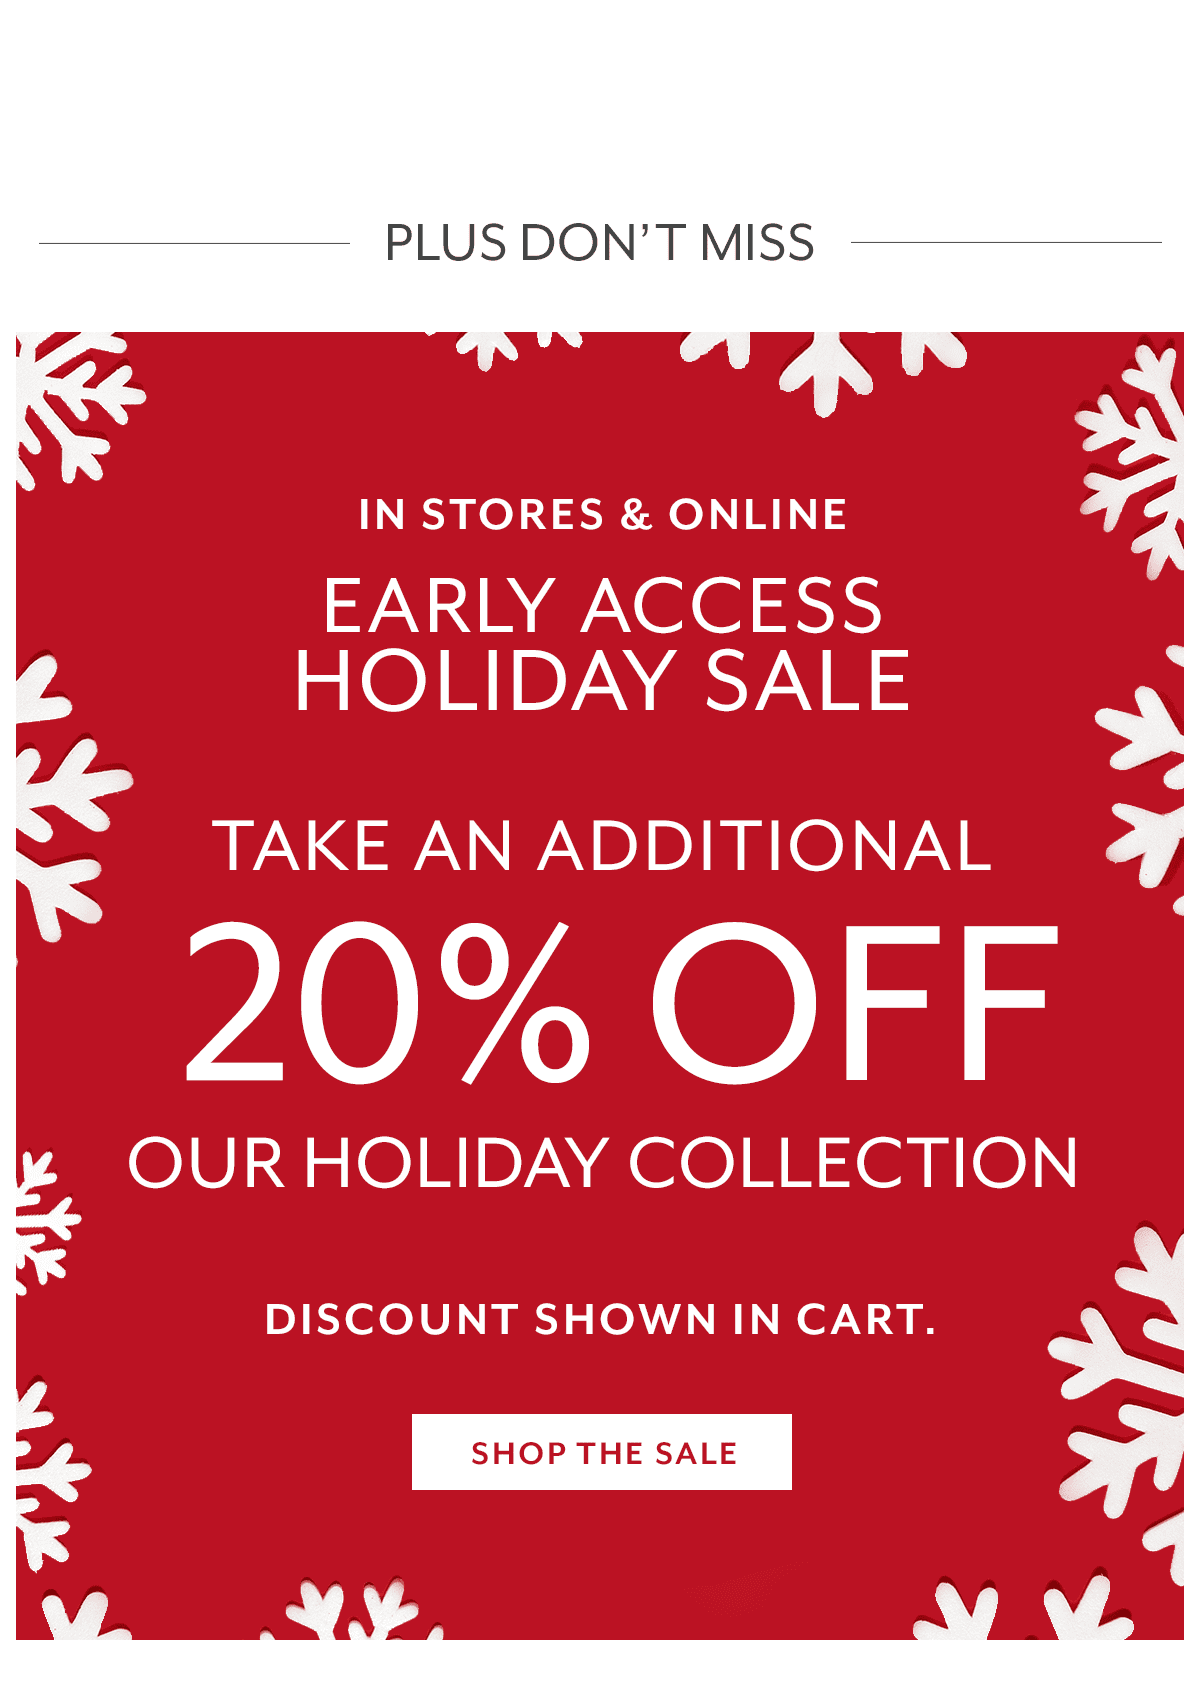 Early Access Holiday Sale